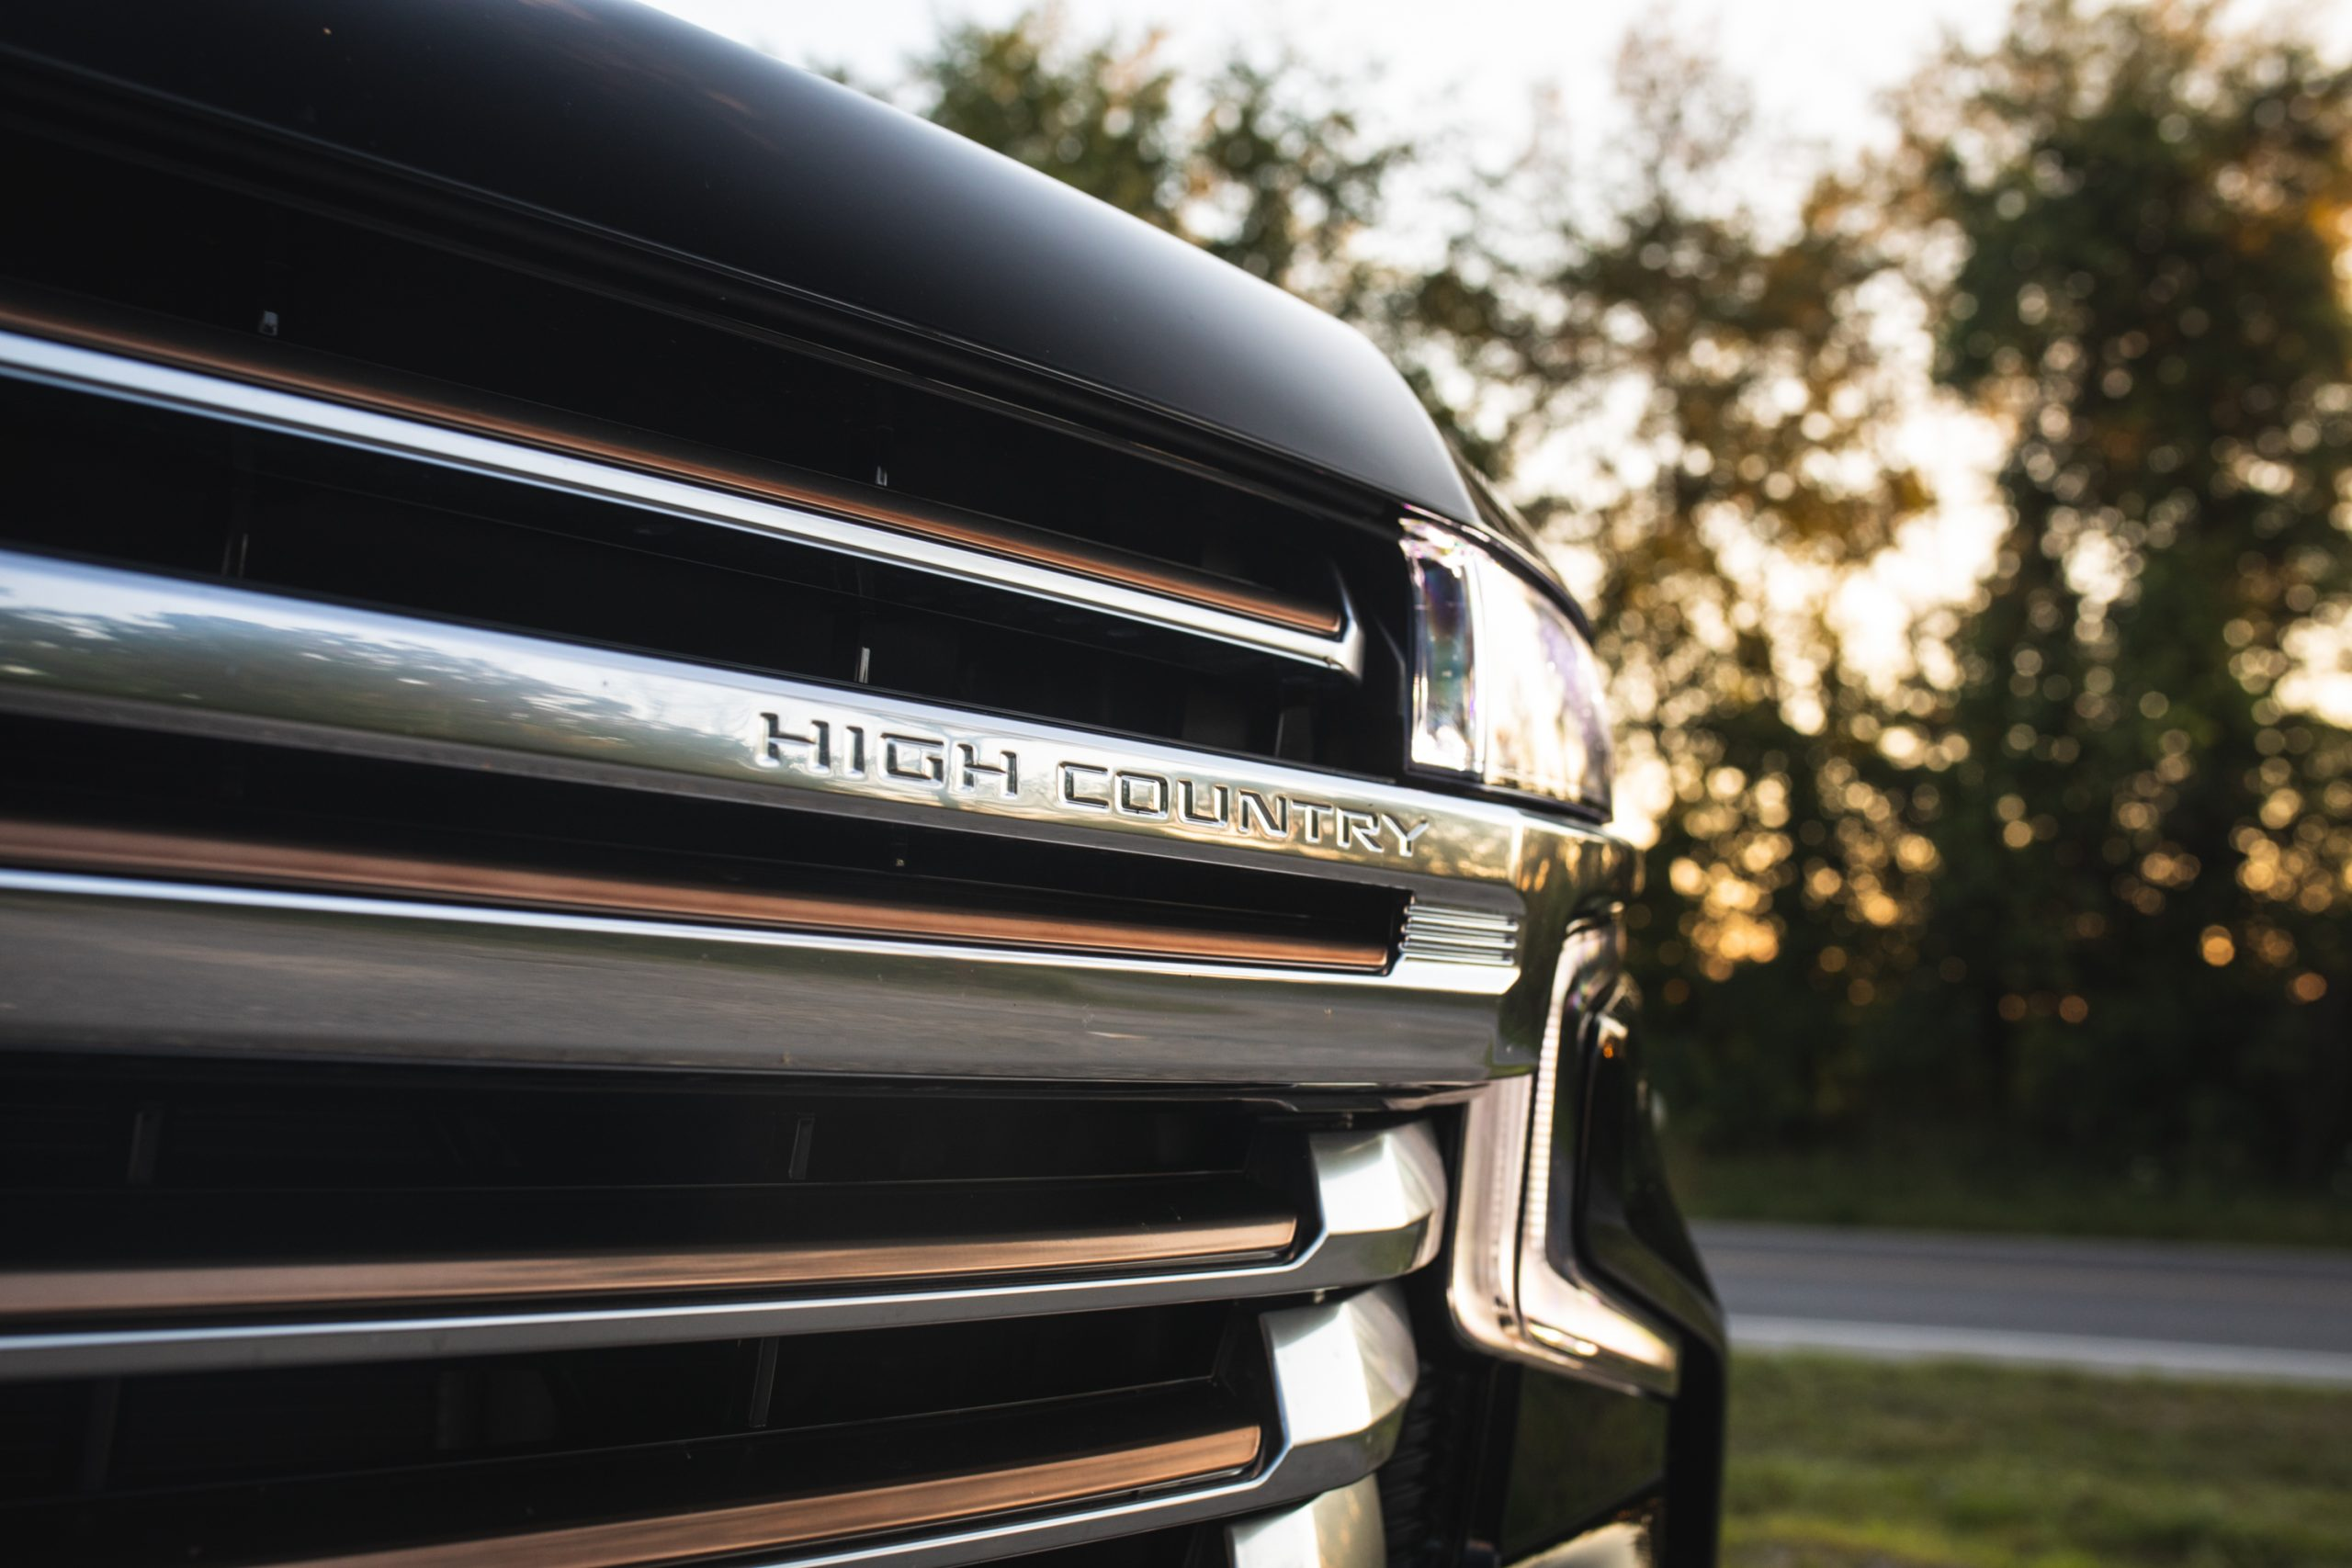 2021 Chevrolet Tahoe High Country grille close up